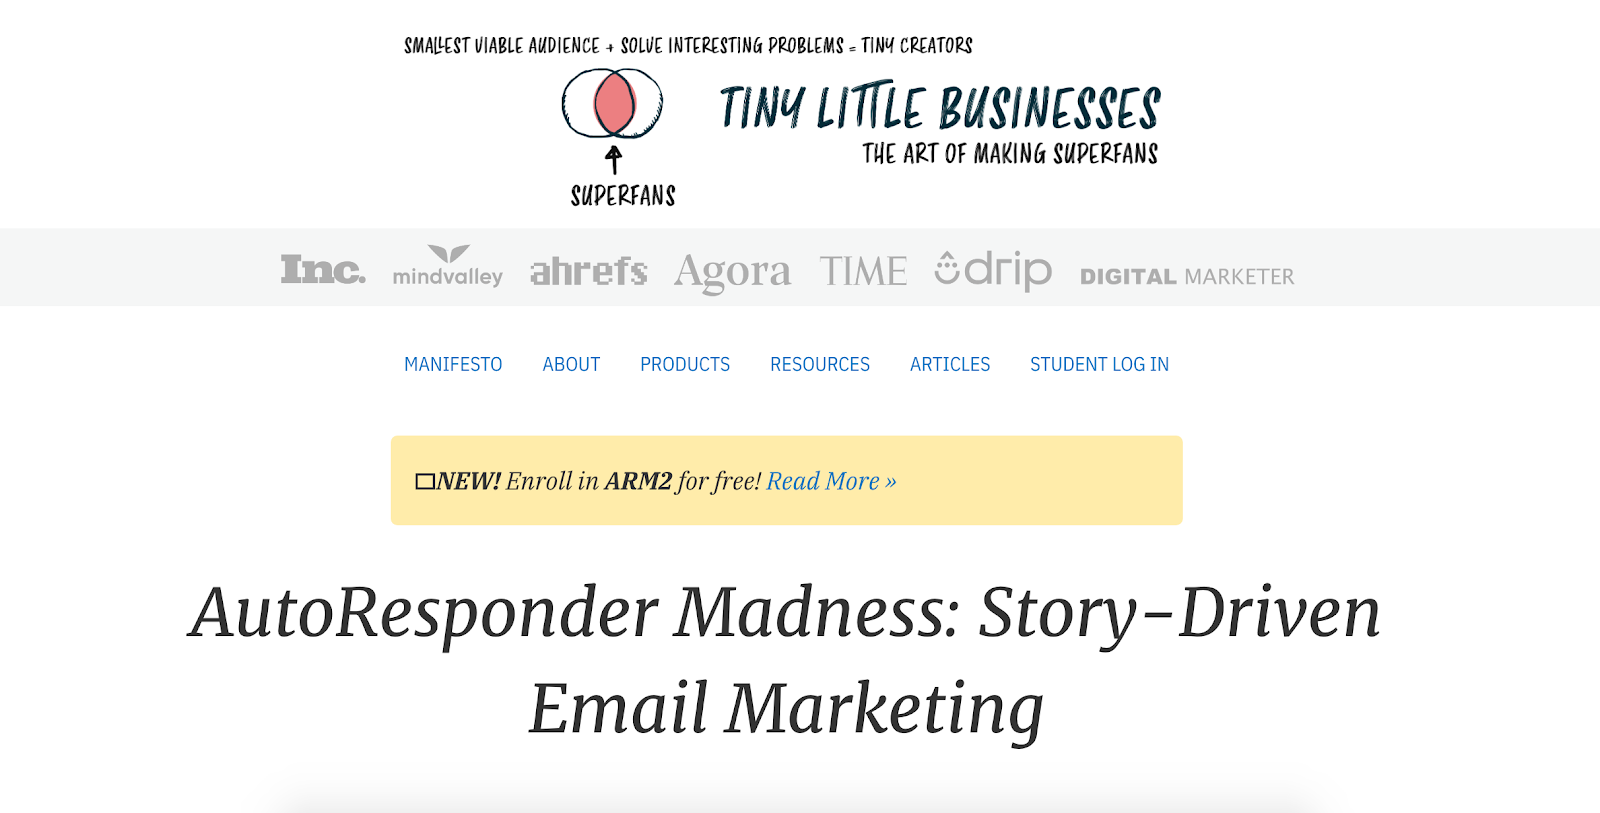 AutoResponder Madness Course - Story-Driven Email Marketing